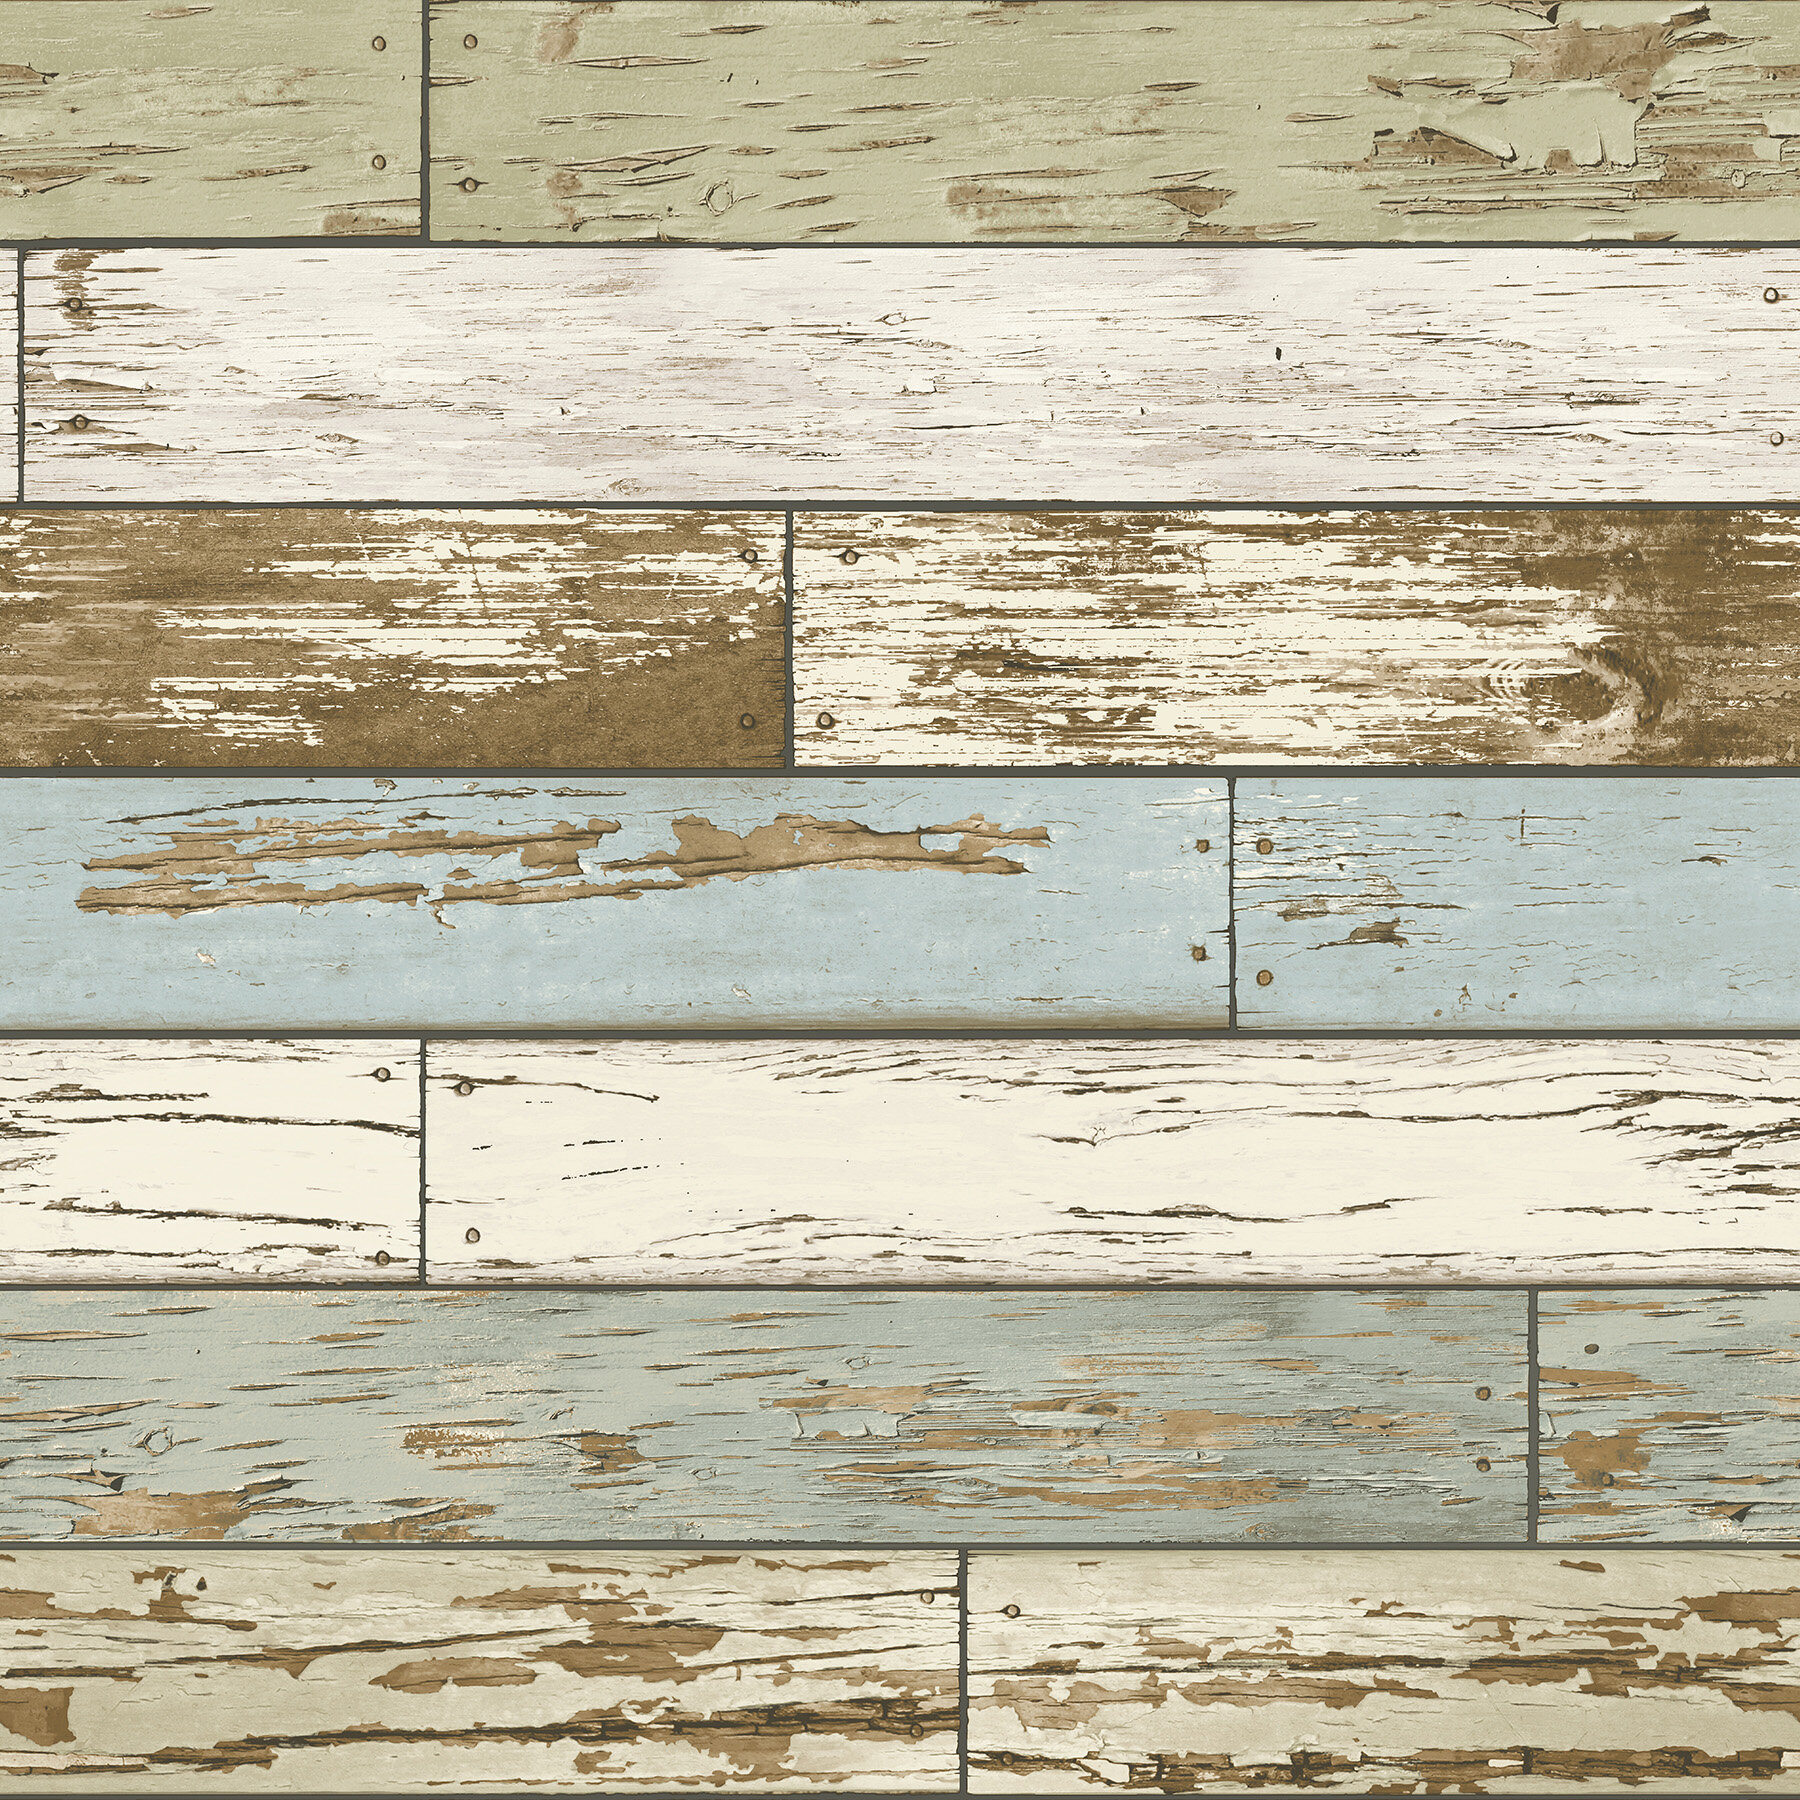 18Distressed Faux Wood Plank Peel /& Stick Wallpaper Off White Pale Brown Papaer